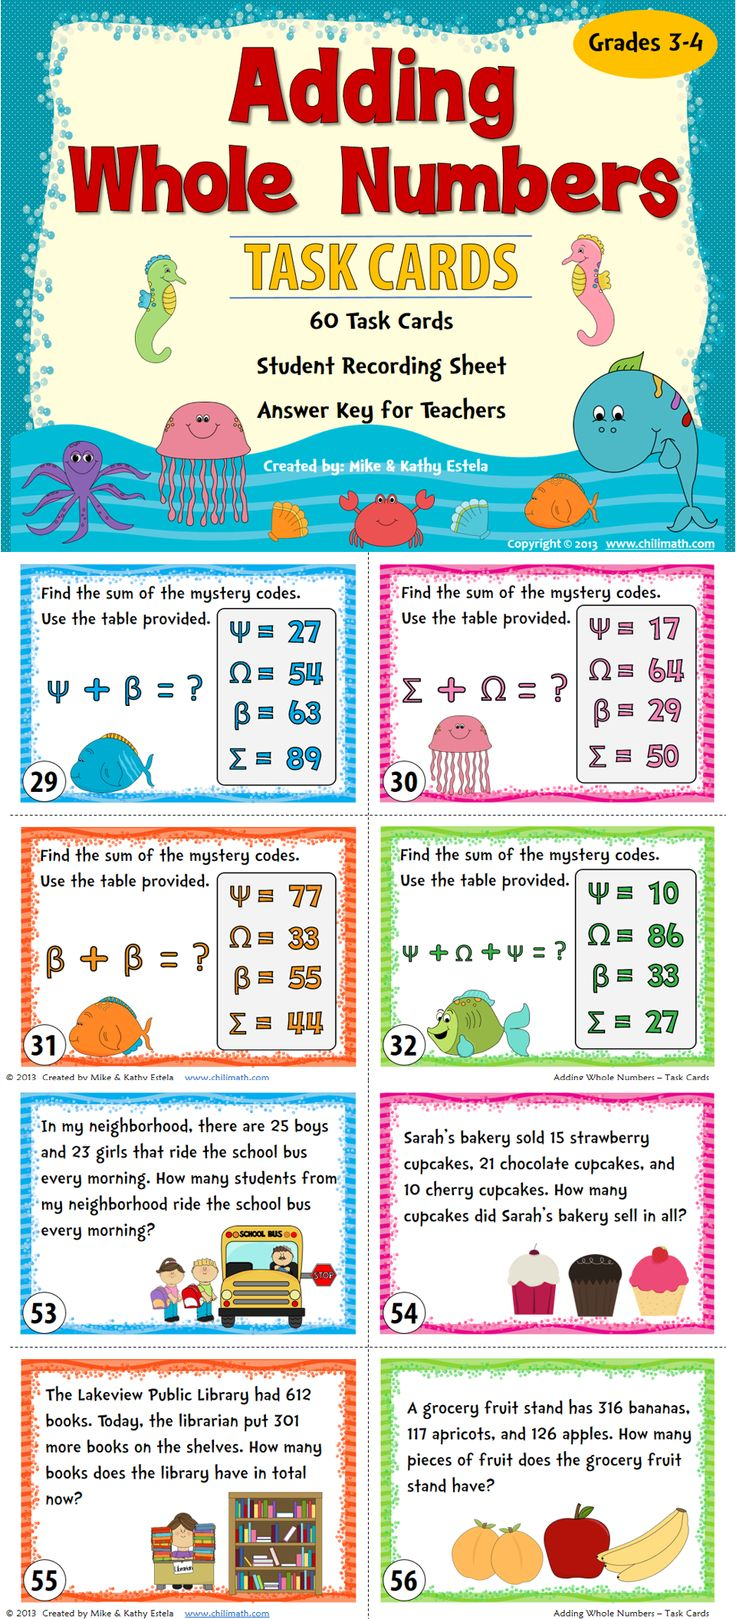 There are sixty (60) task cards in this set created to practice students' skills on how to add whole numbers with and without regrouping. $